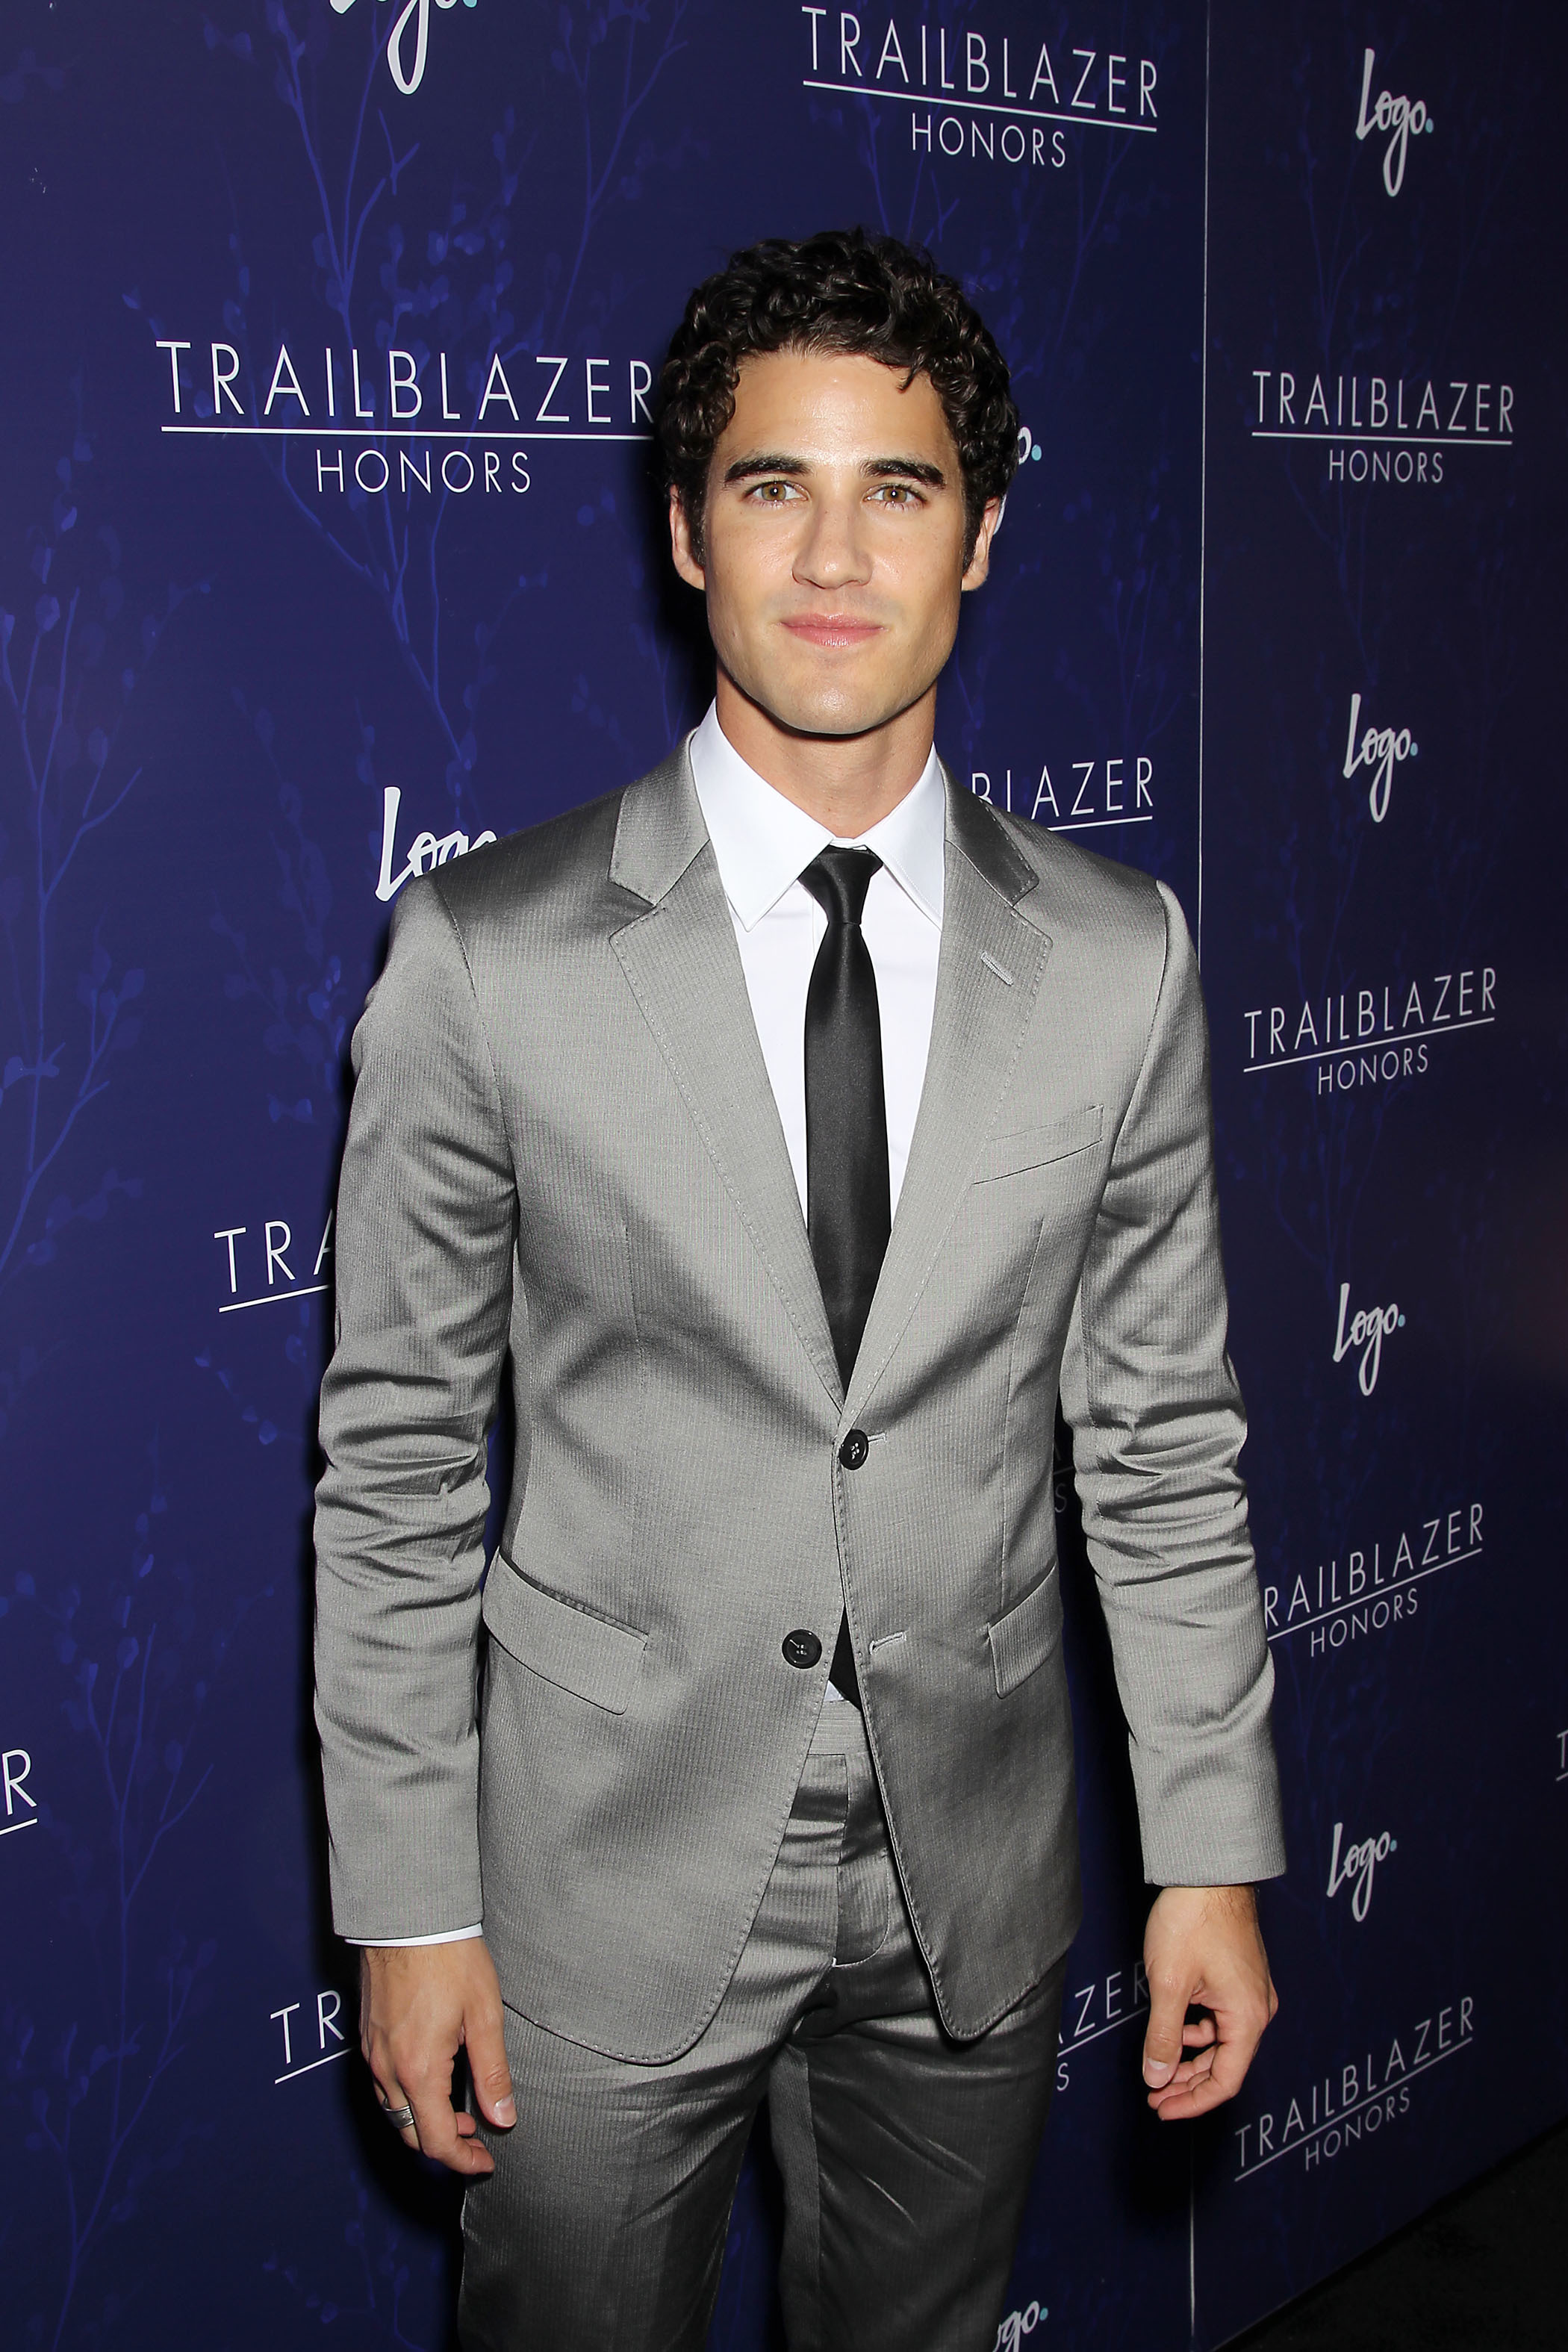 Darren Criss attends the Logo Trailblazer Honors 2017 in New York City on June 22, 2017.